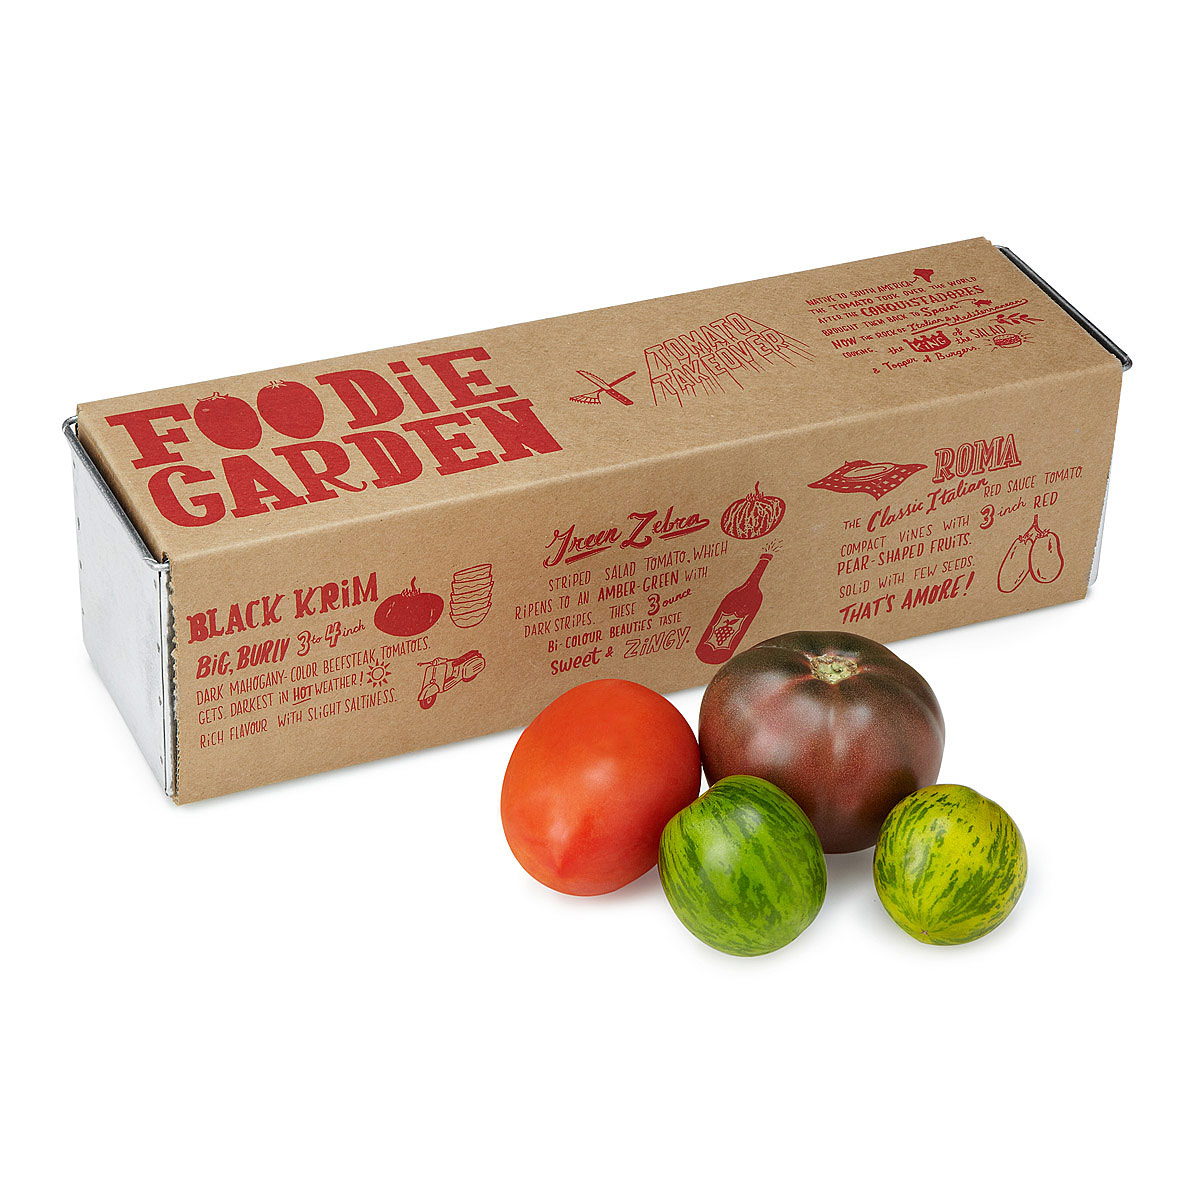 Foodie Garden: Tomato Takeover Grow Kit